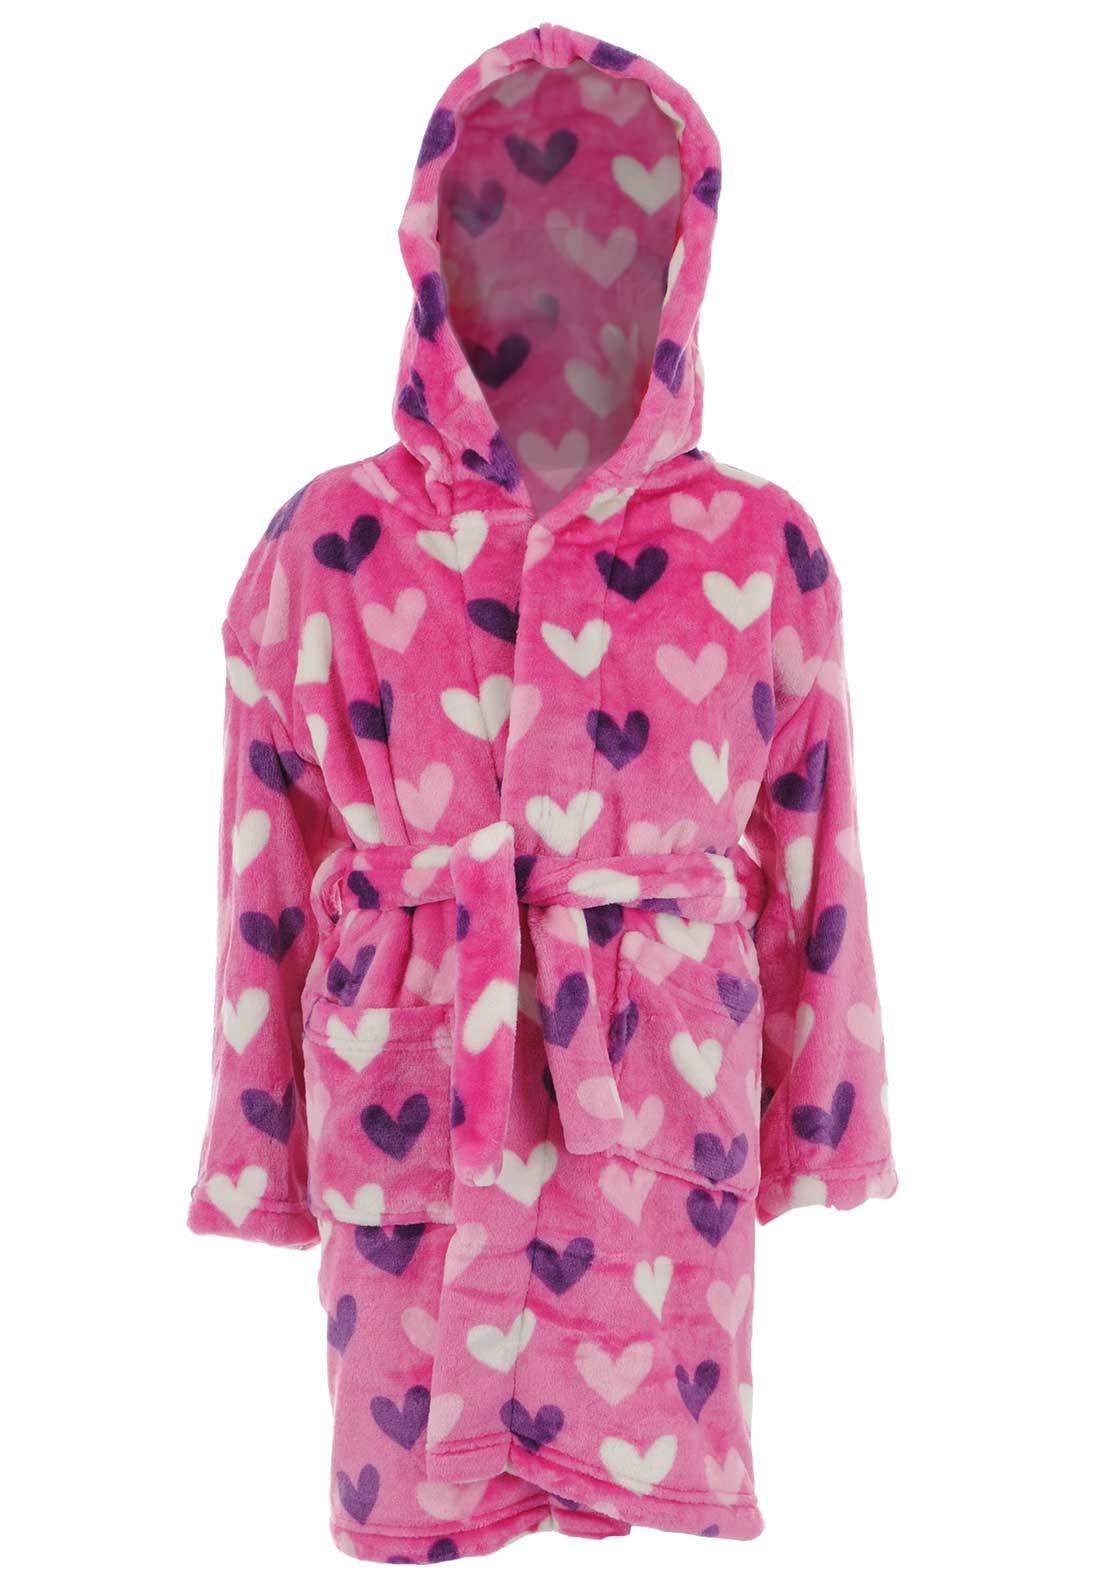 Hatley Girls Hearts Fleece Dressing Gown, Pink